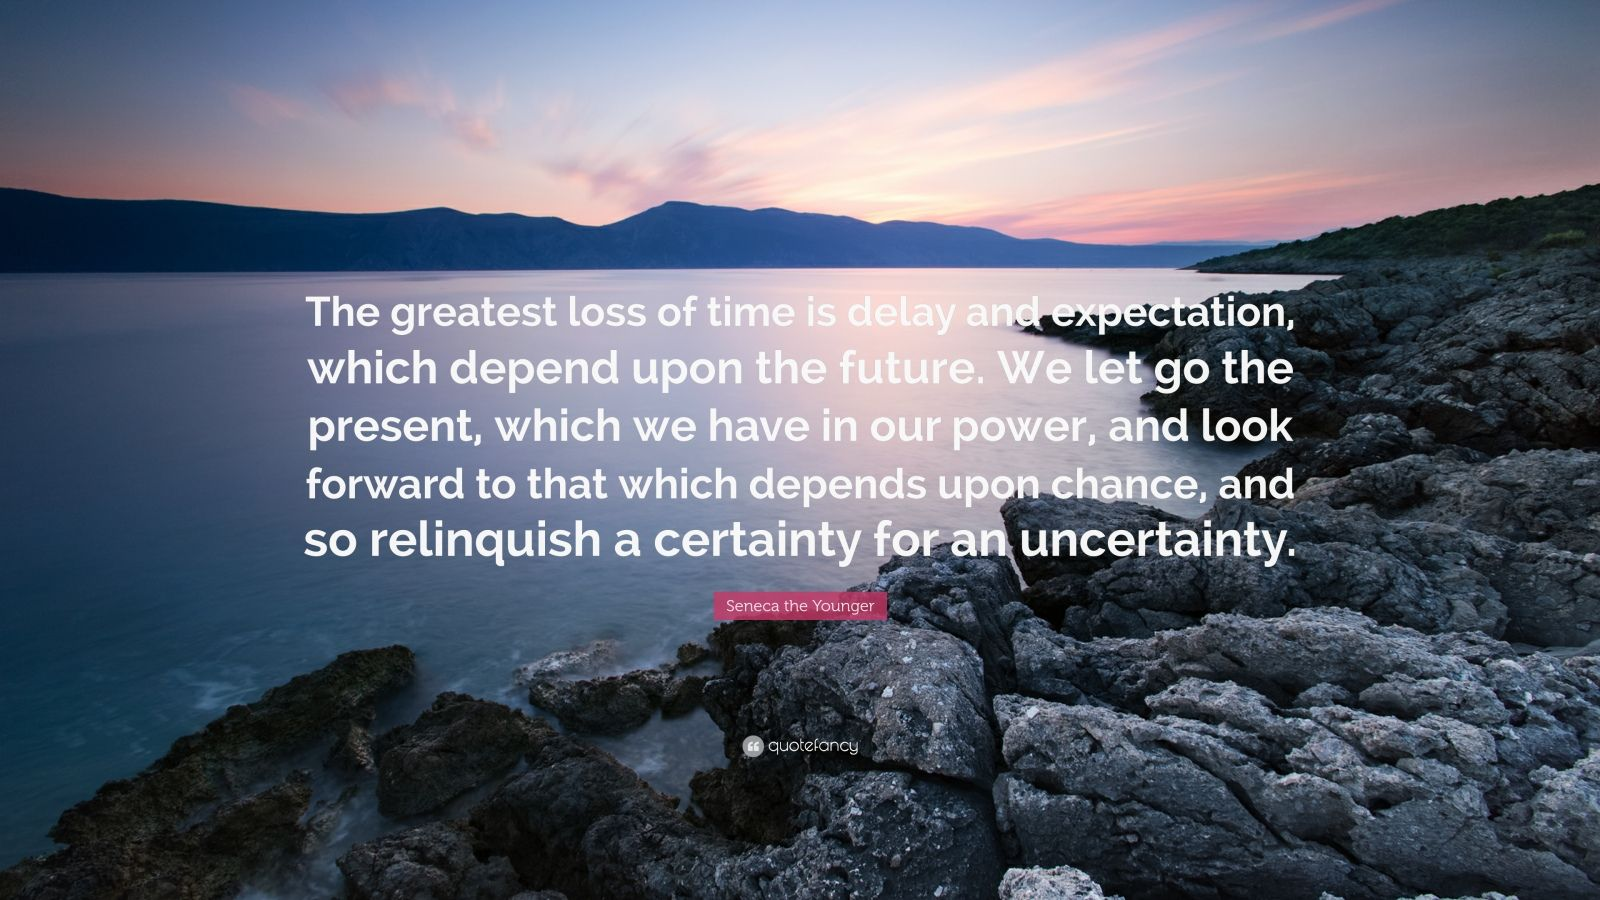 """Seneca the Younger Quote: """"The greatest loss of time is delay and expectation, which depend upon the future. We let go the present, which we have in our power, and look forward to that which depends upon chance, and so relinquish a certainty for an uncertainty."""""""